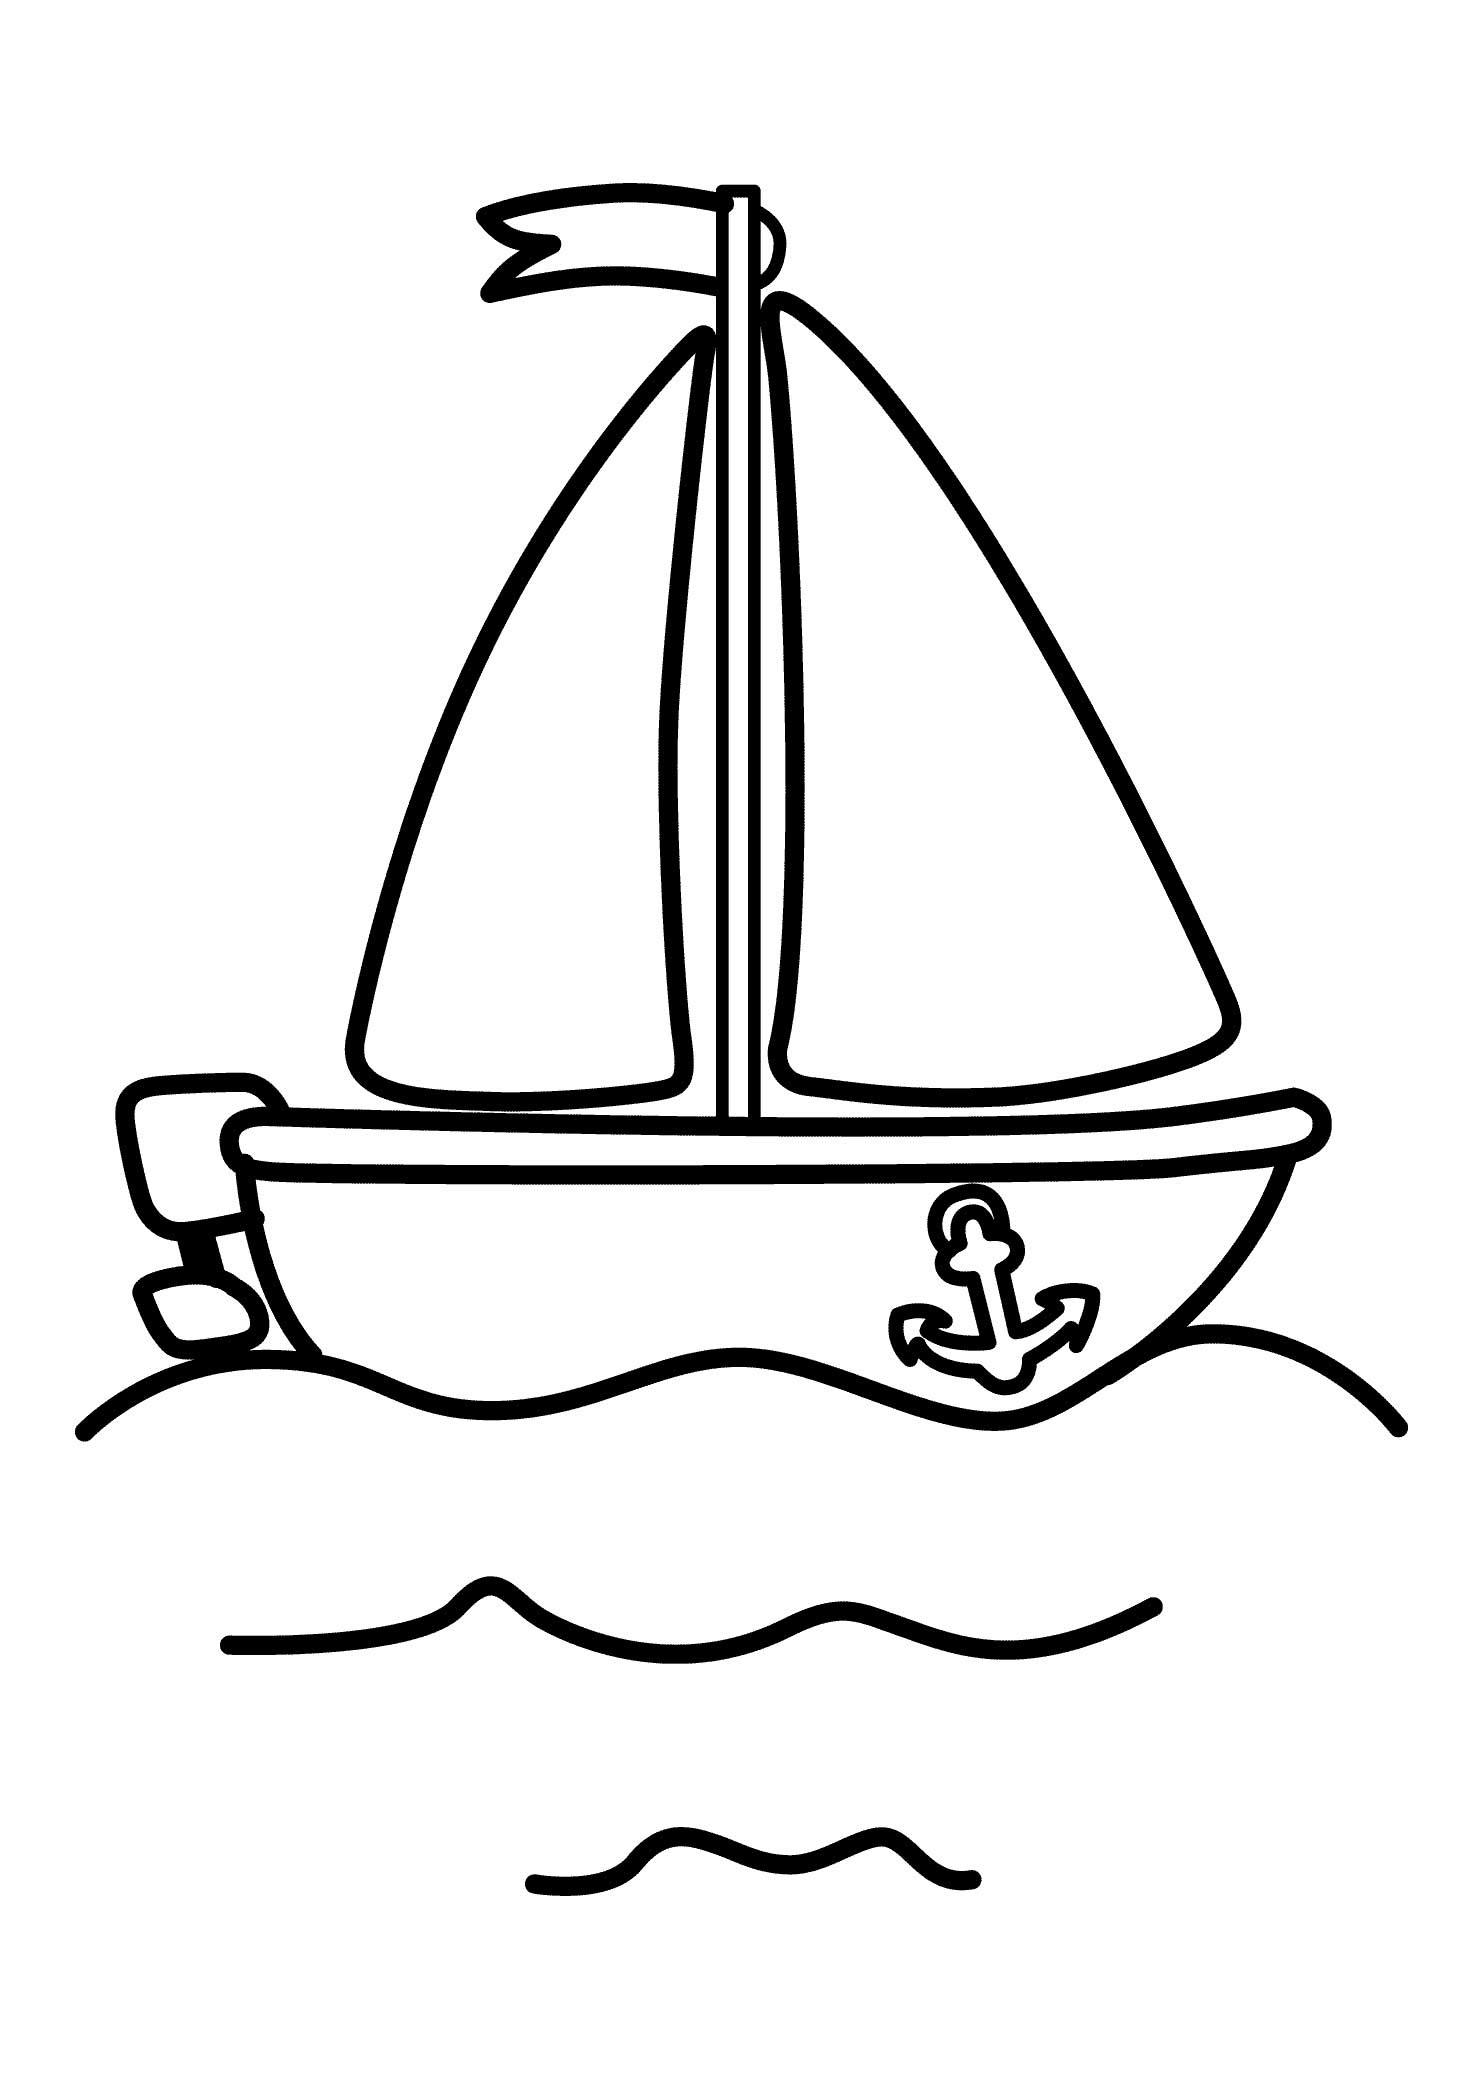 Rugged Boat Coloring Page | Free | Ship Coloring Pages | Fishing Boats | 2079x1483